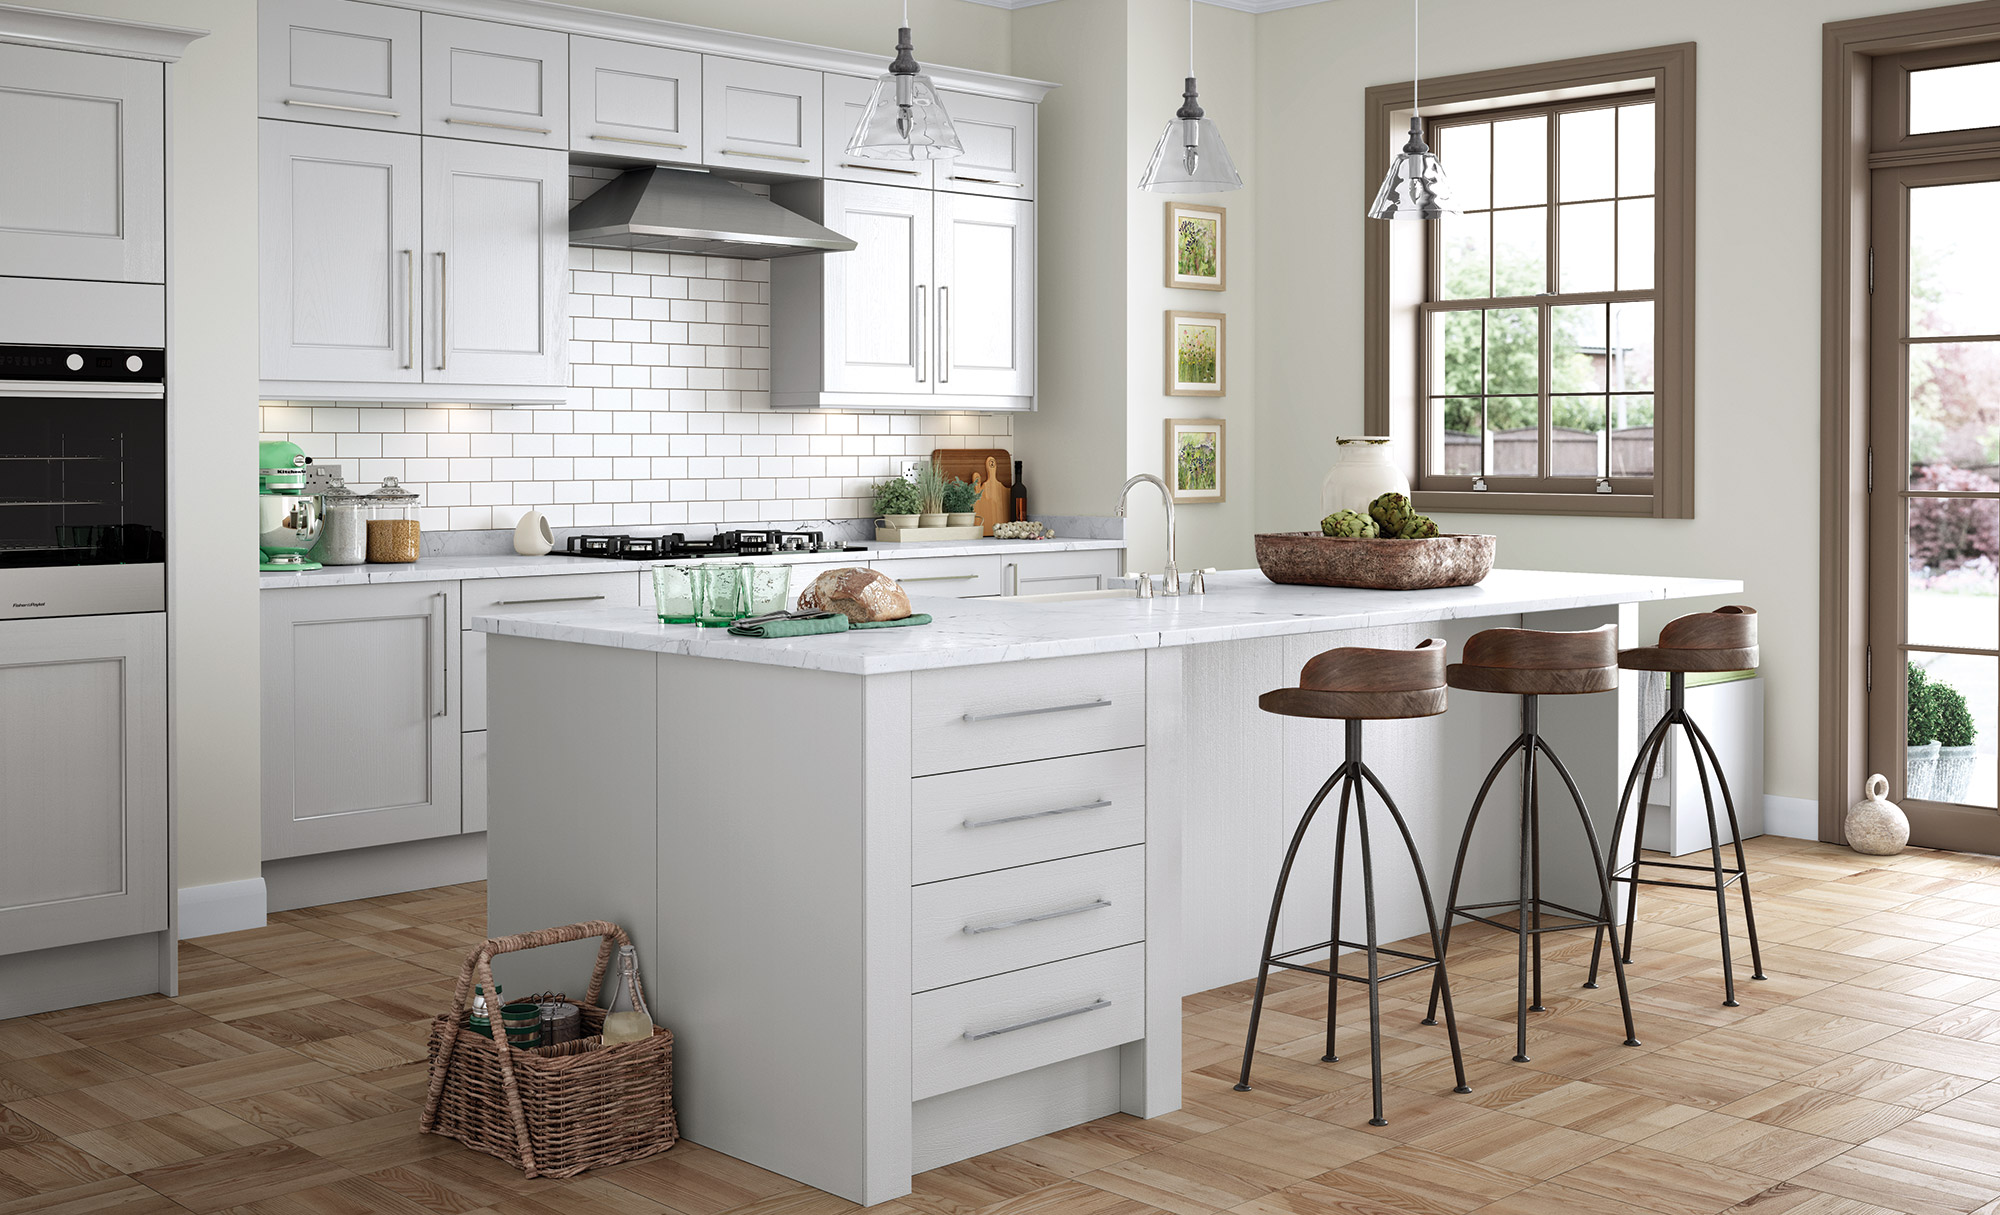 Top 5 Superb Kitchen Cabinet Design Ideas